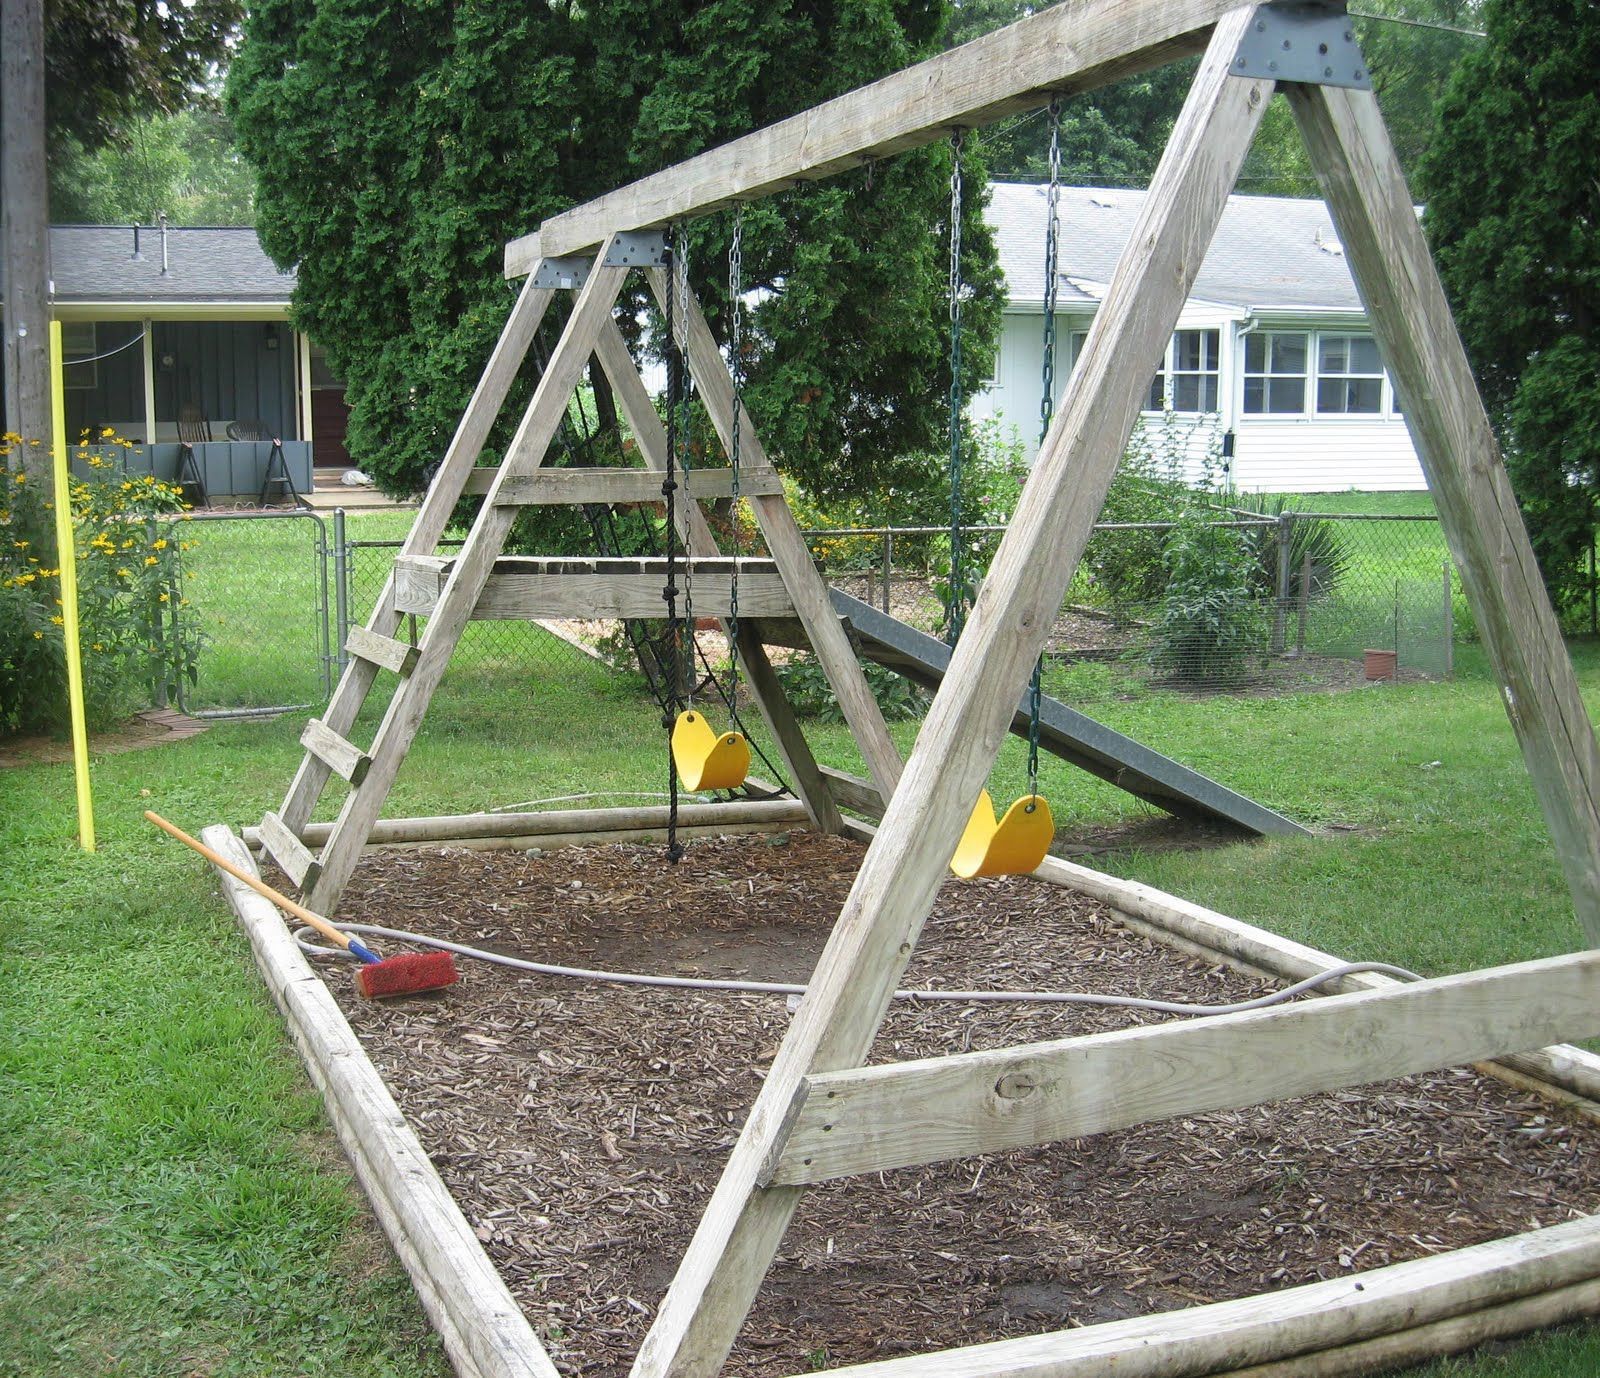 DIY Playset Plans  How to Refinish a Wood Swing Set stepbystep